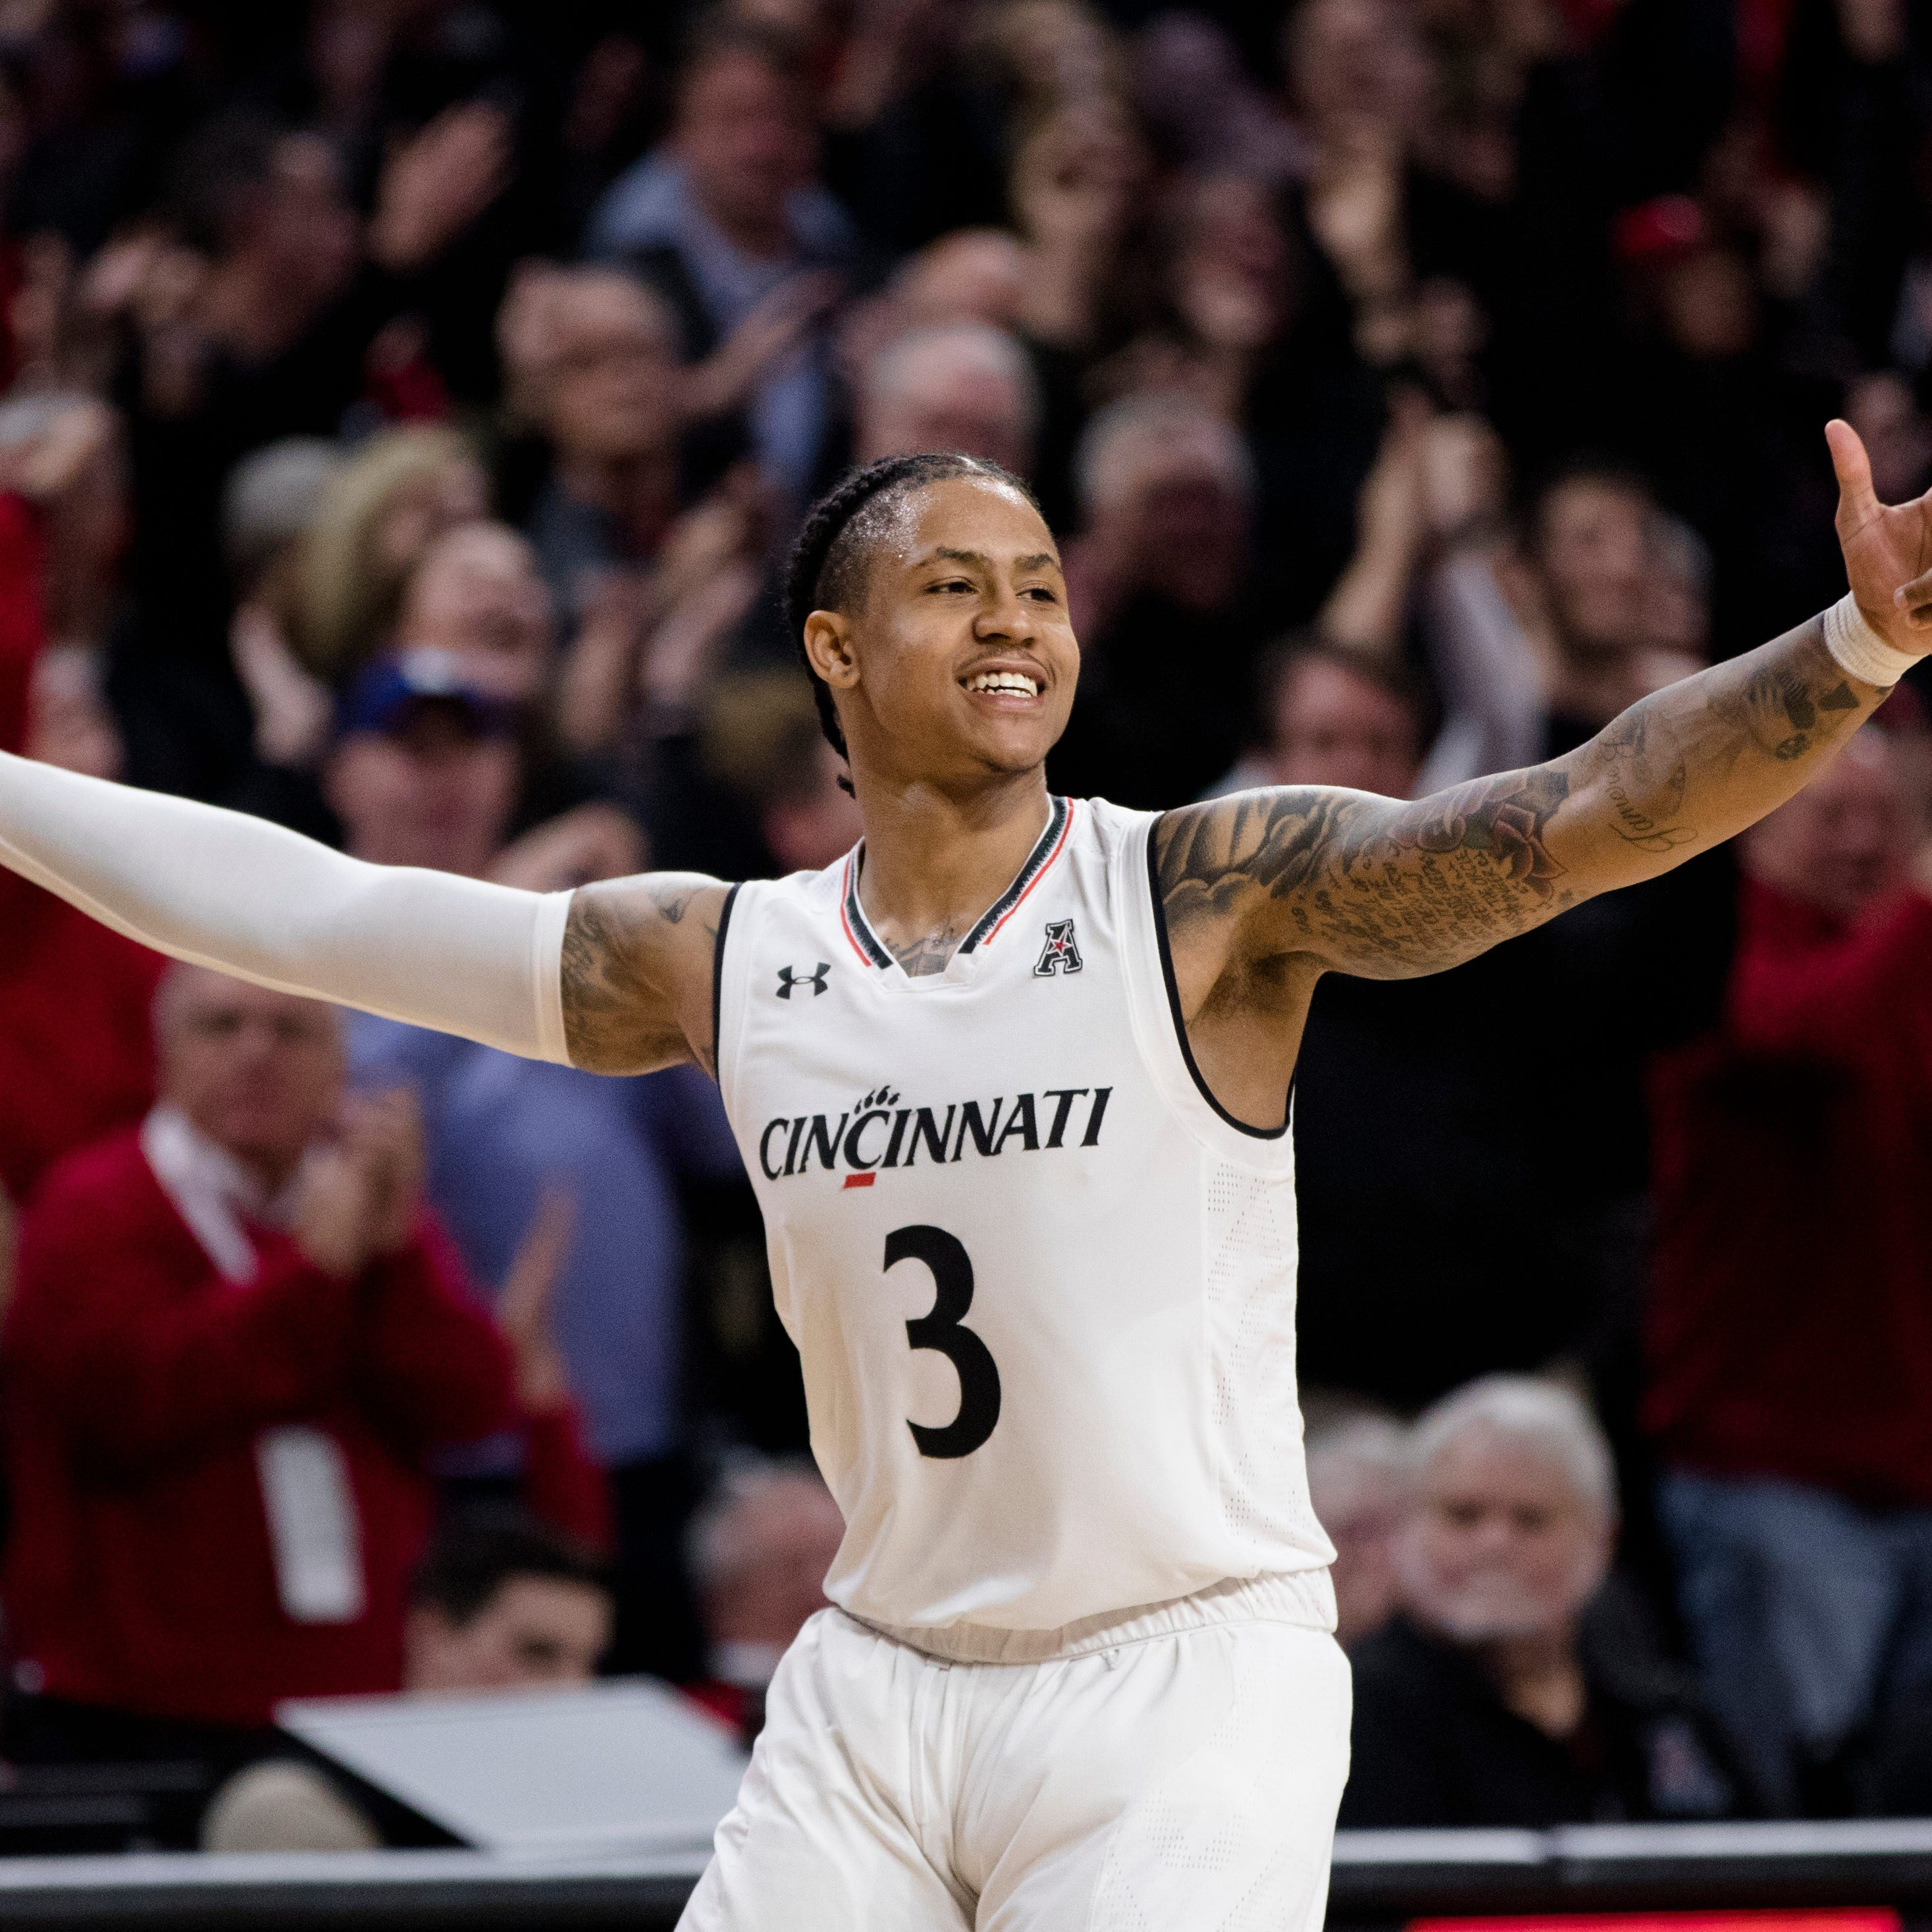 Paul Daugherty: It is time for the Cincinnati Bearcats to put on a show for the selection committee